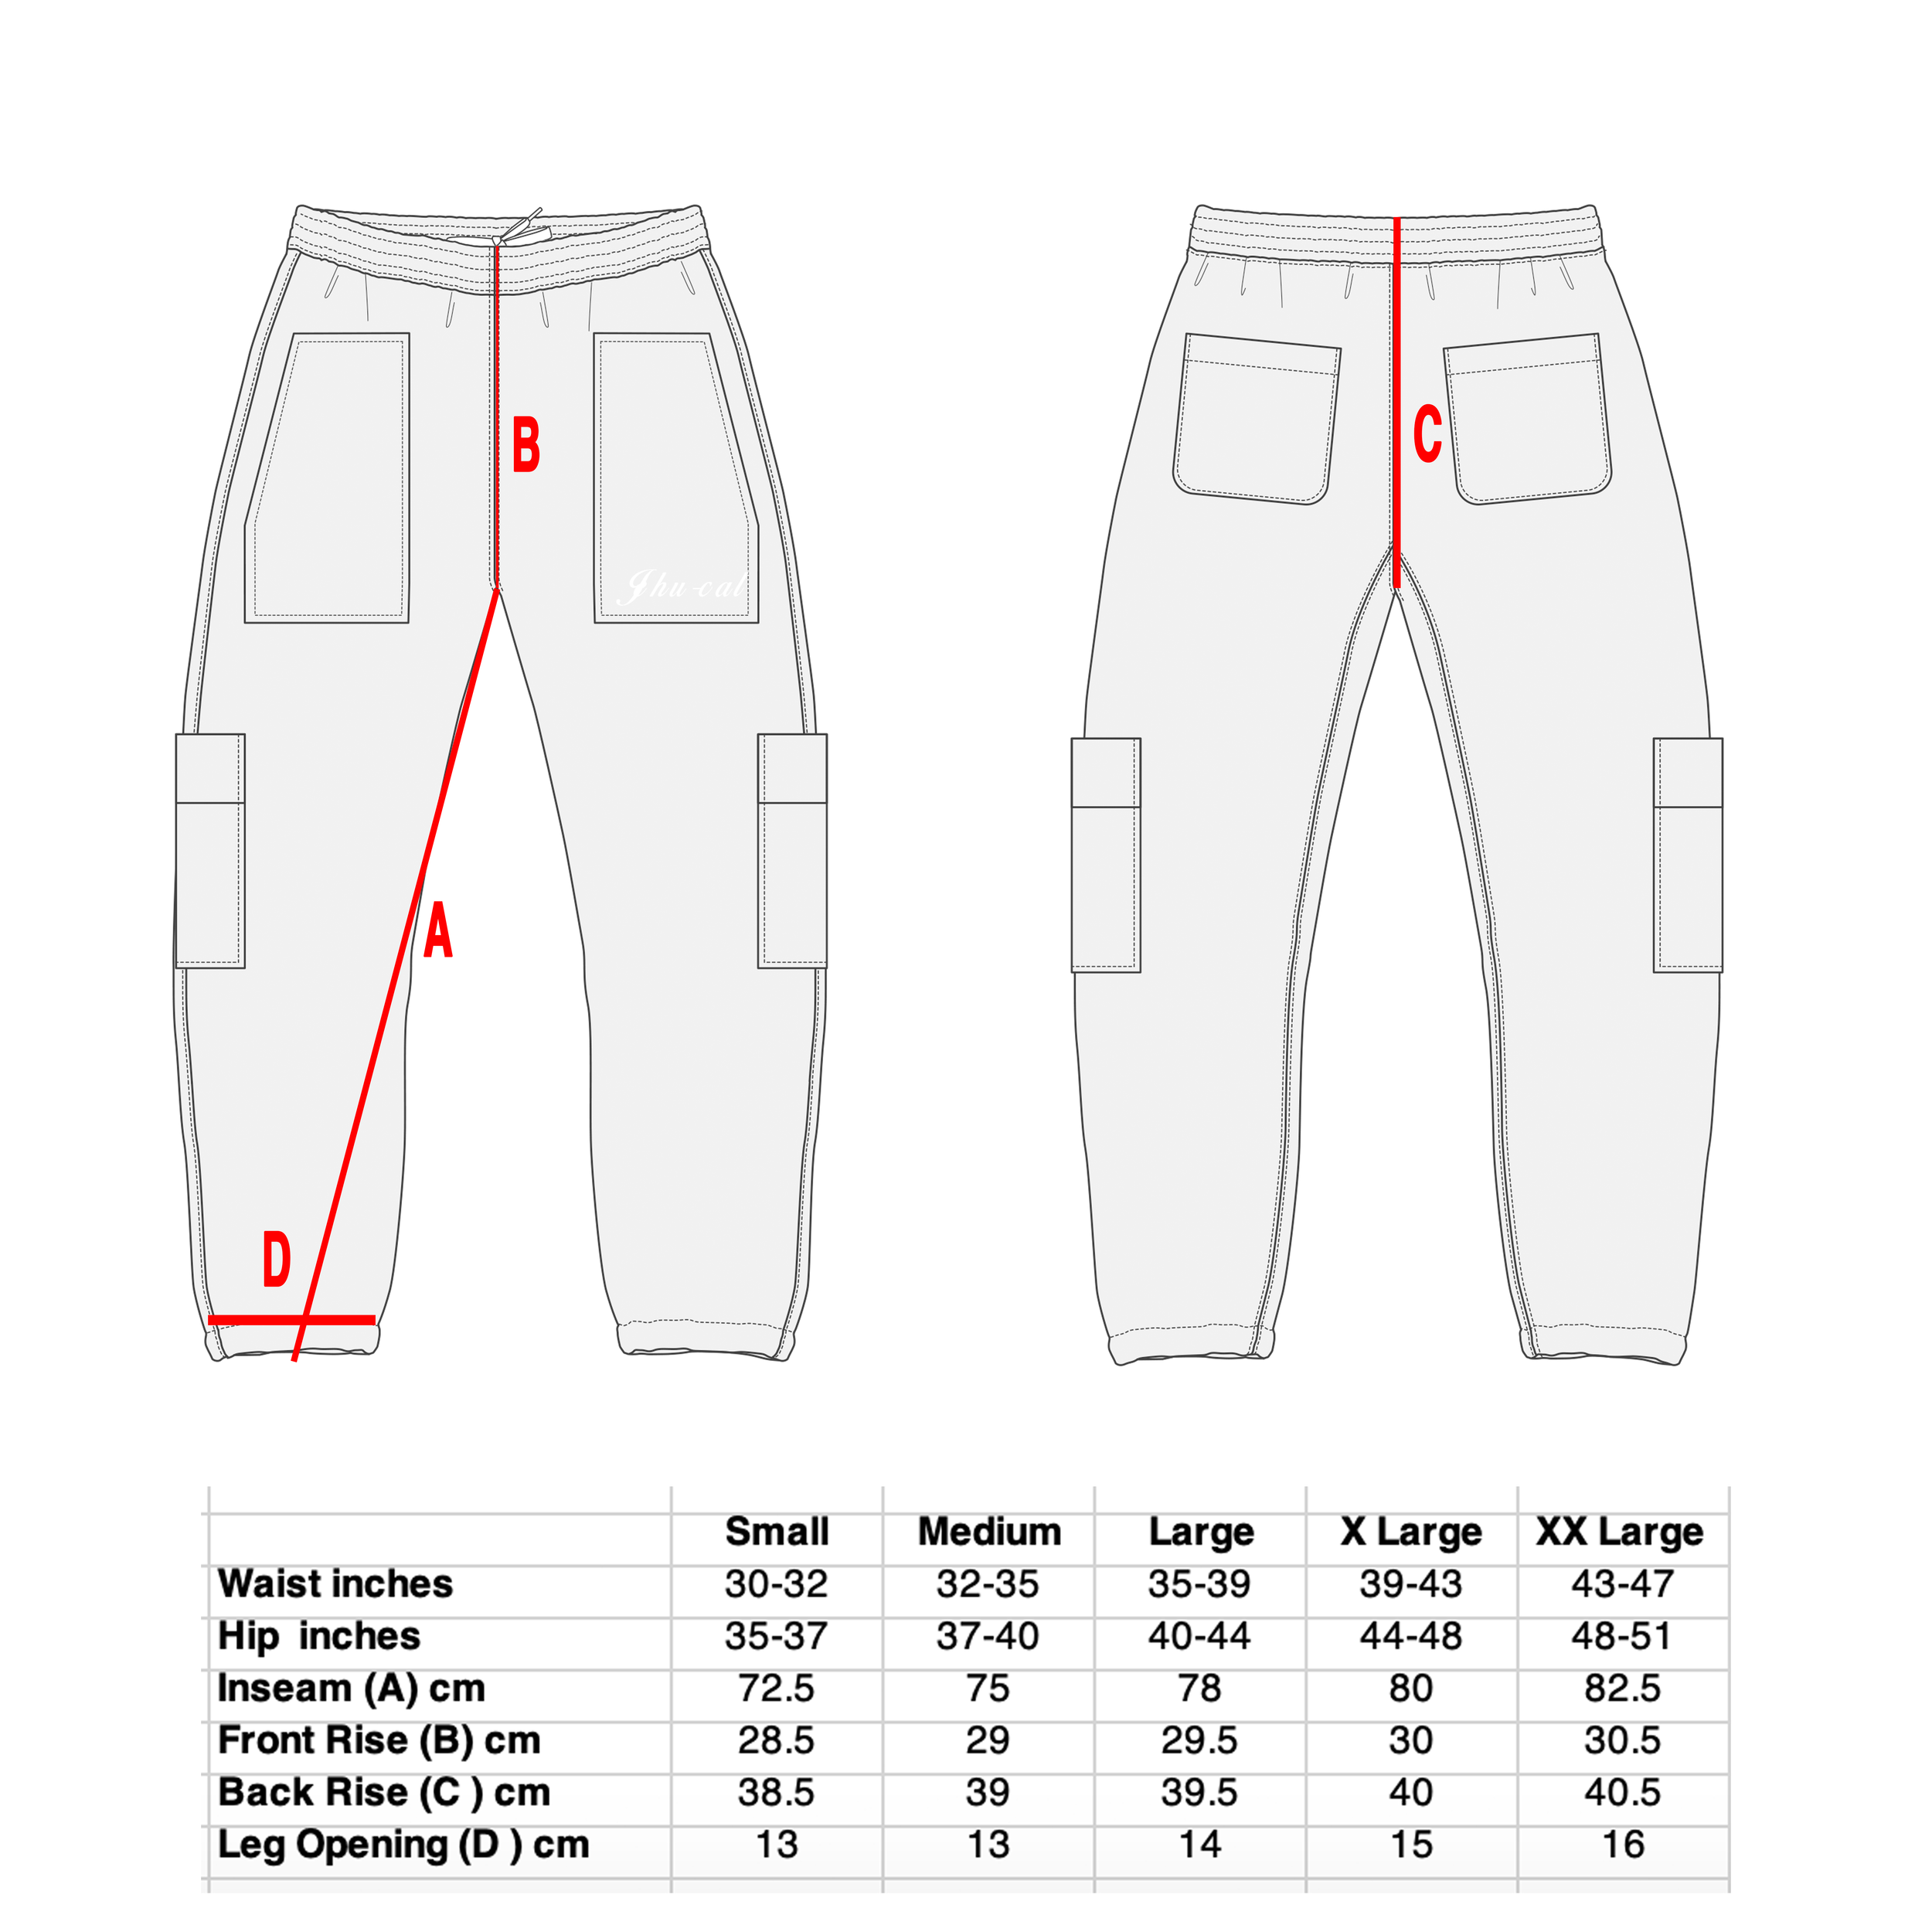 cargos measurements 2.png